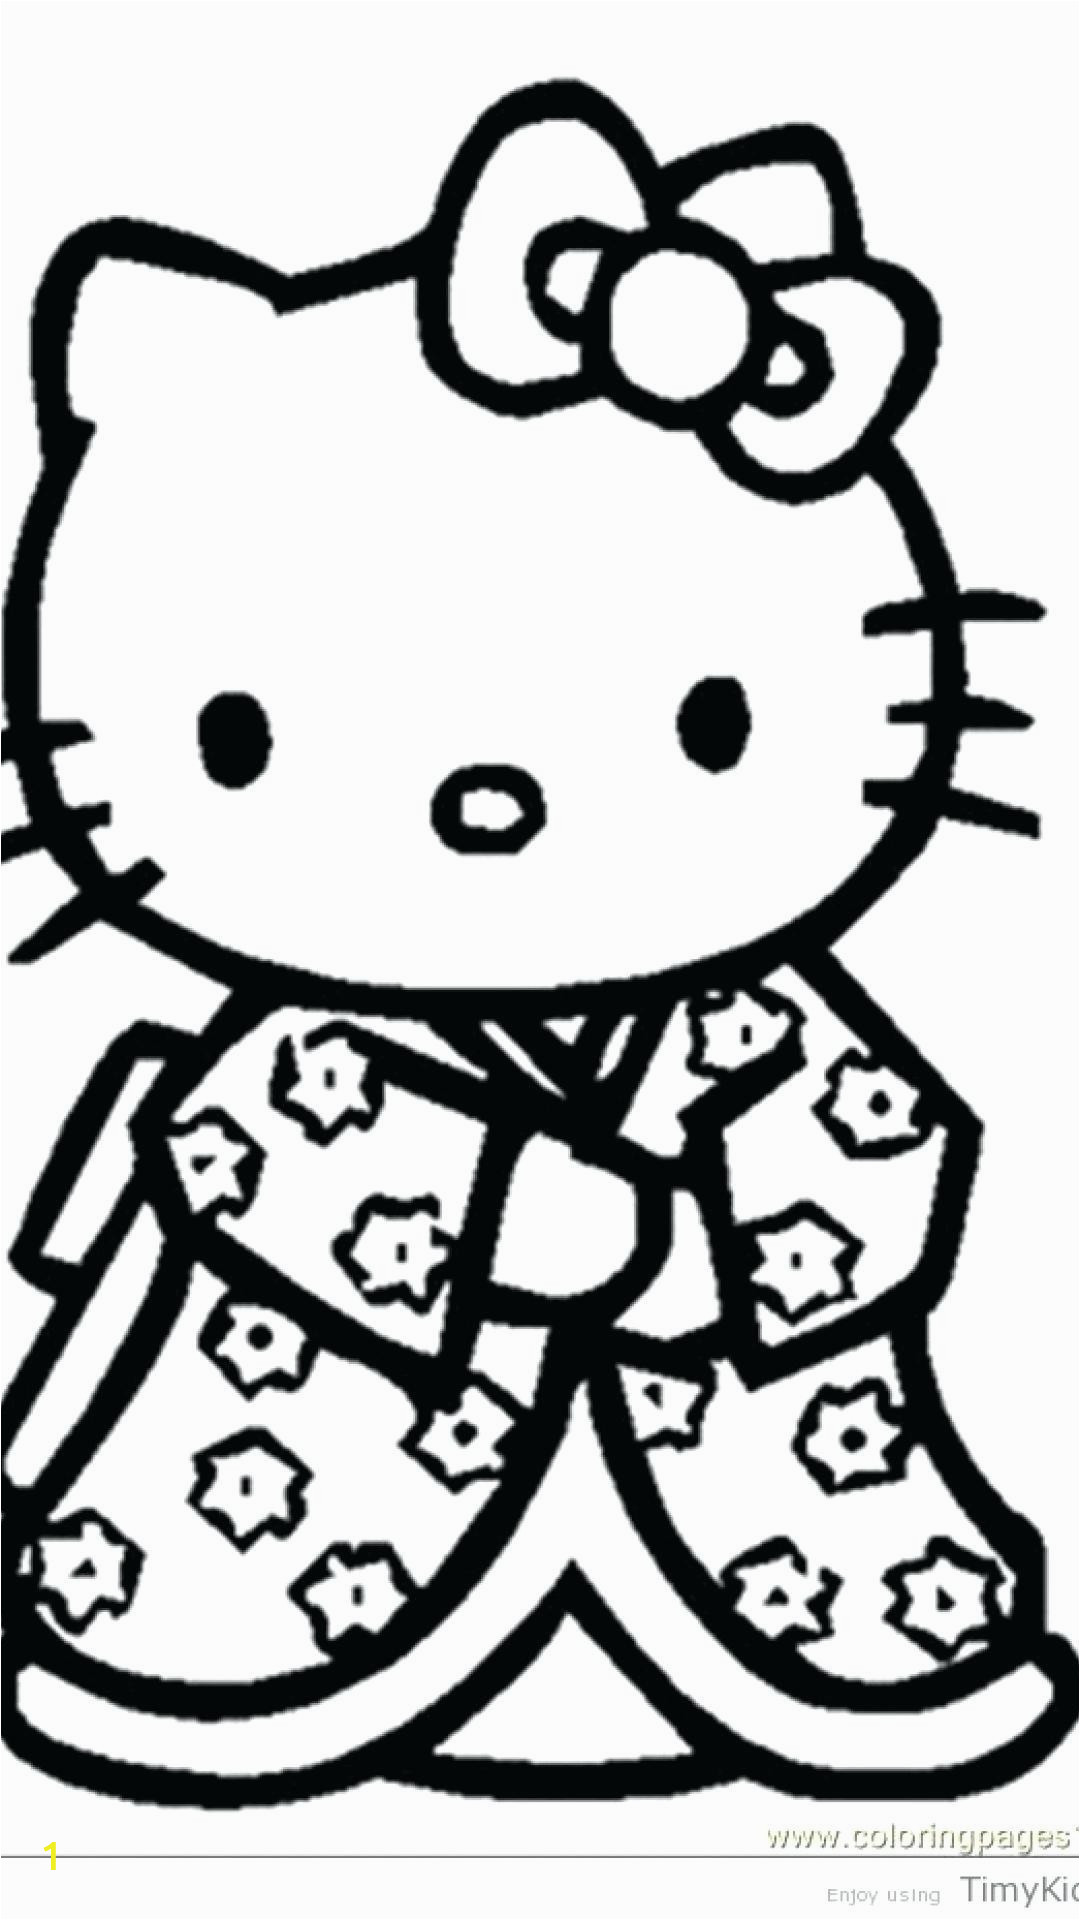 hello kitty mermaid coloring pages luxury coloring book hello kitty coloring sheets hello kitty of hello kitty mermaid coloring pages